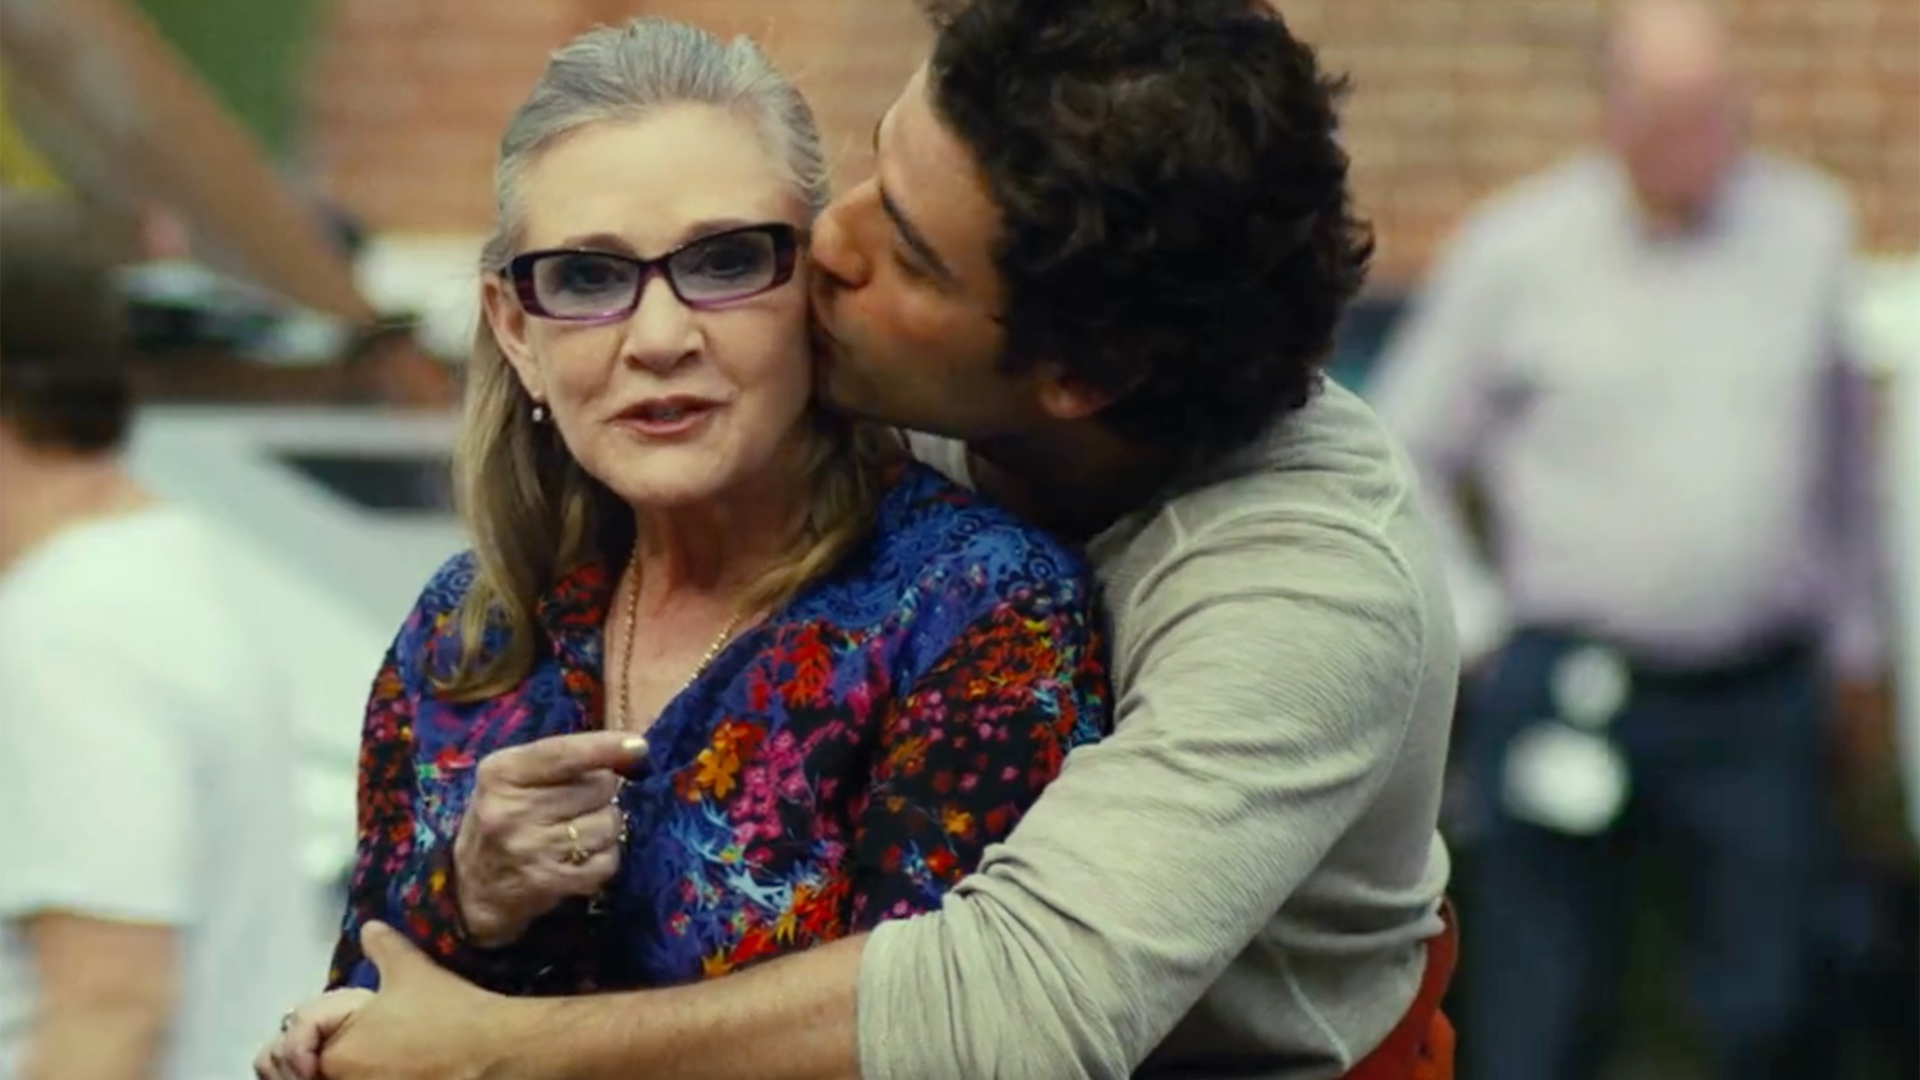 Interesting Details On The Bond Between General Leia And Poe Dameron In Star Wars The Last Jedi Geektyrant